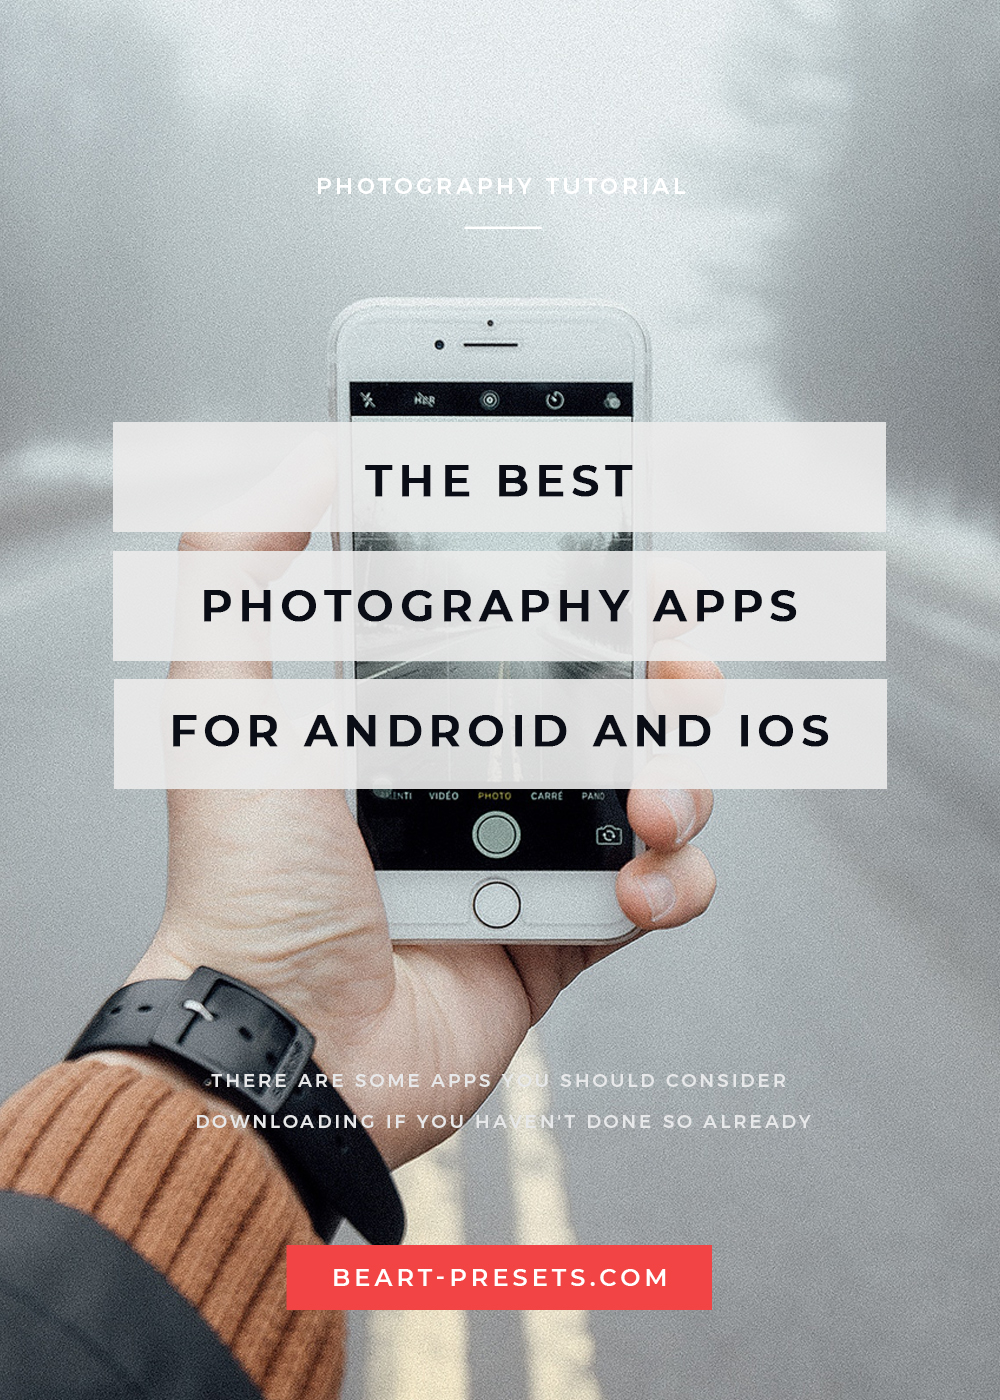 The best photography apps for Android and iOS